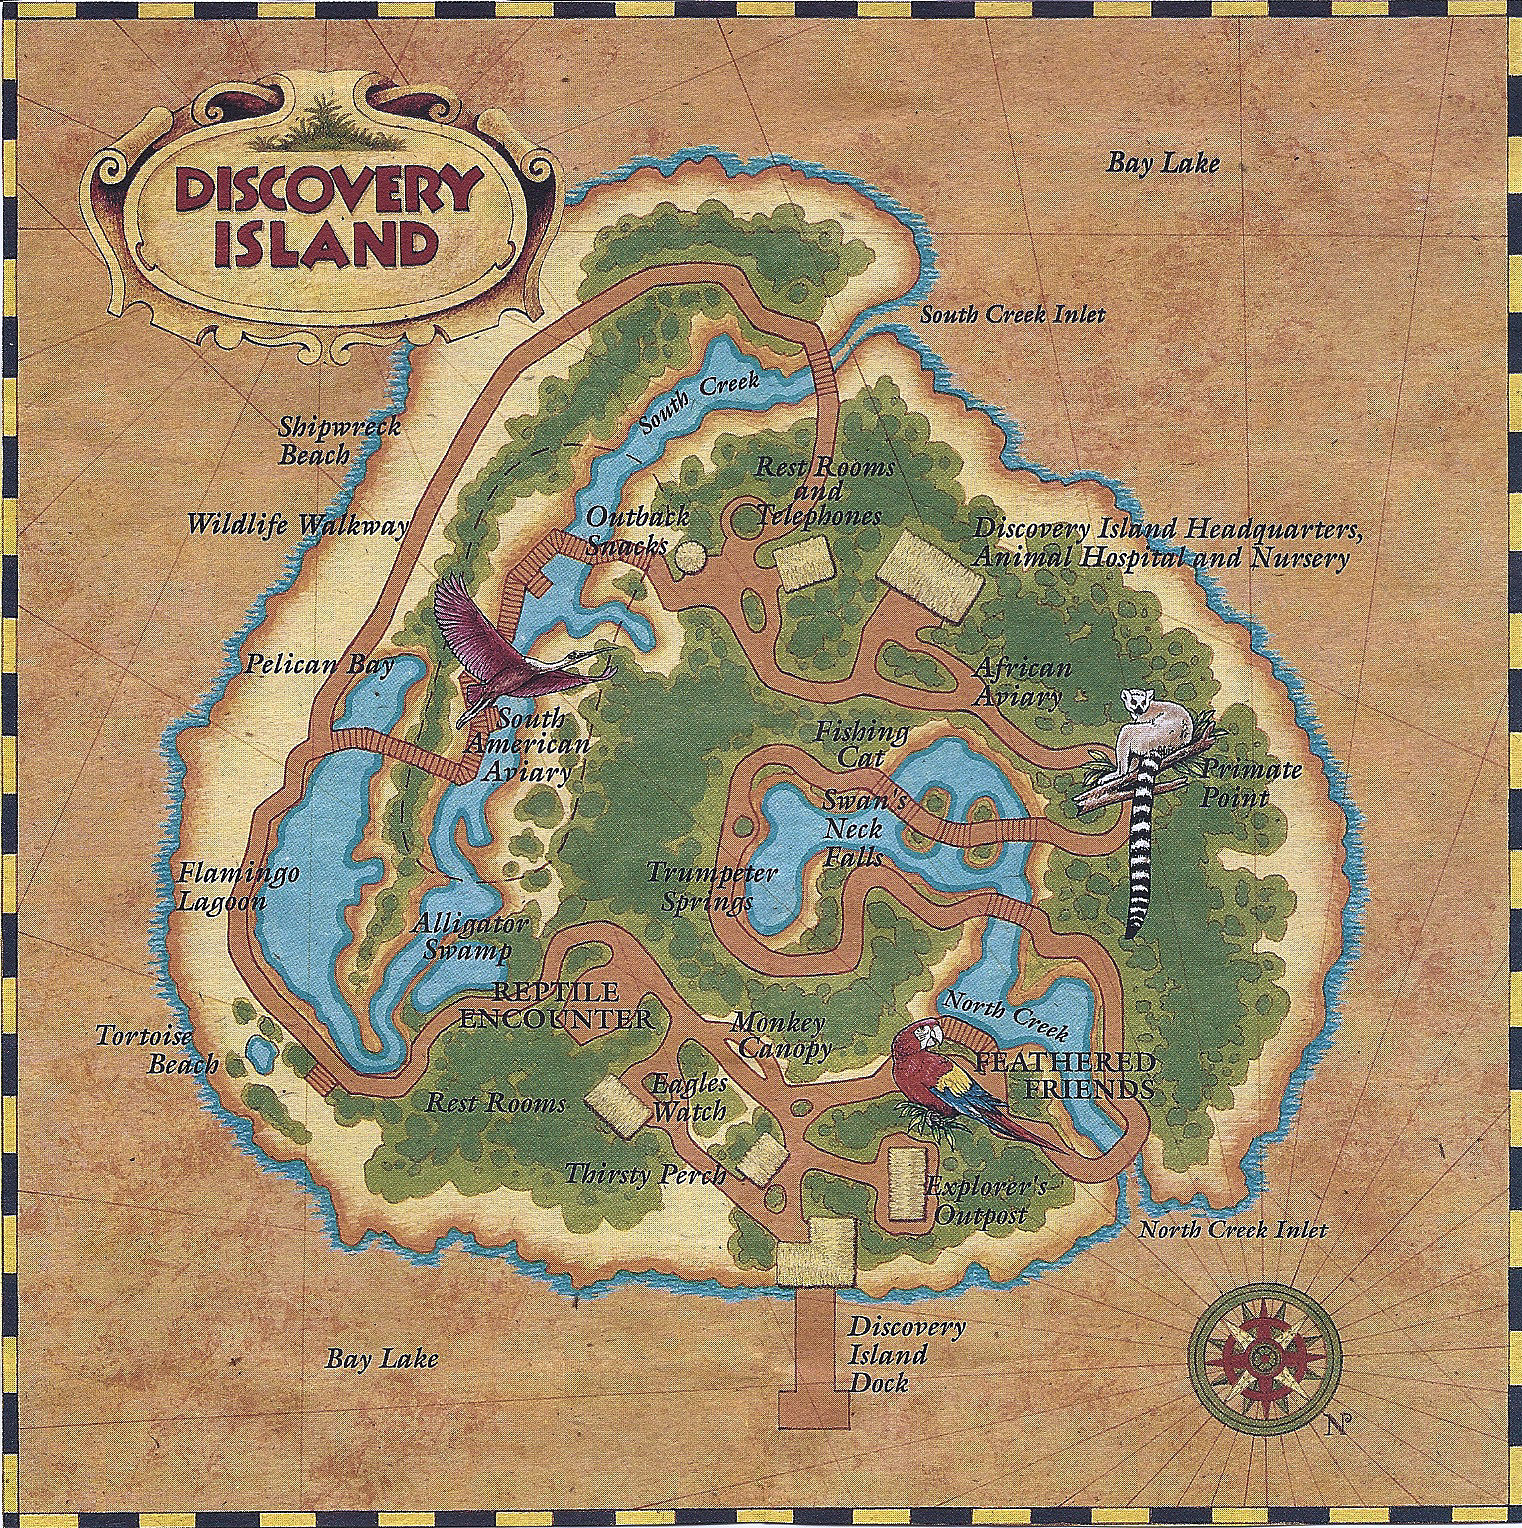 A map of Discovery Island.